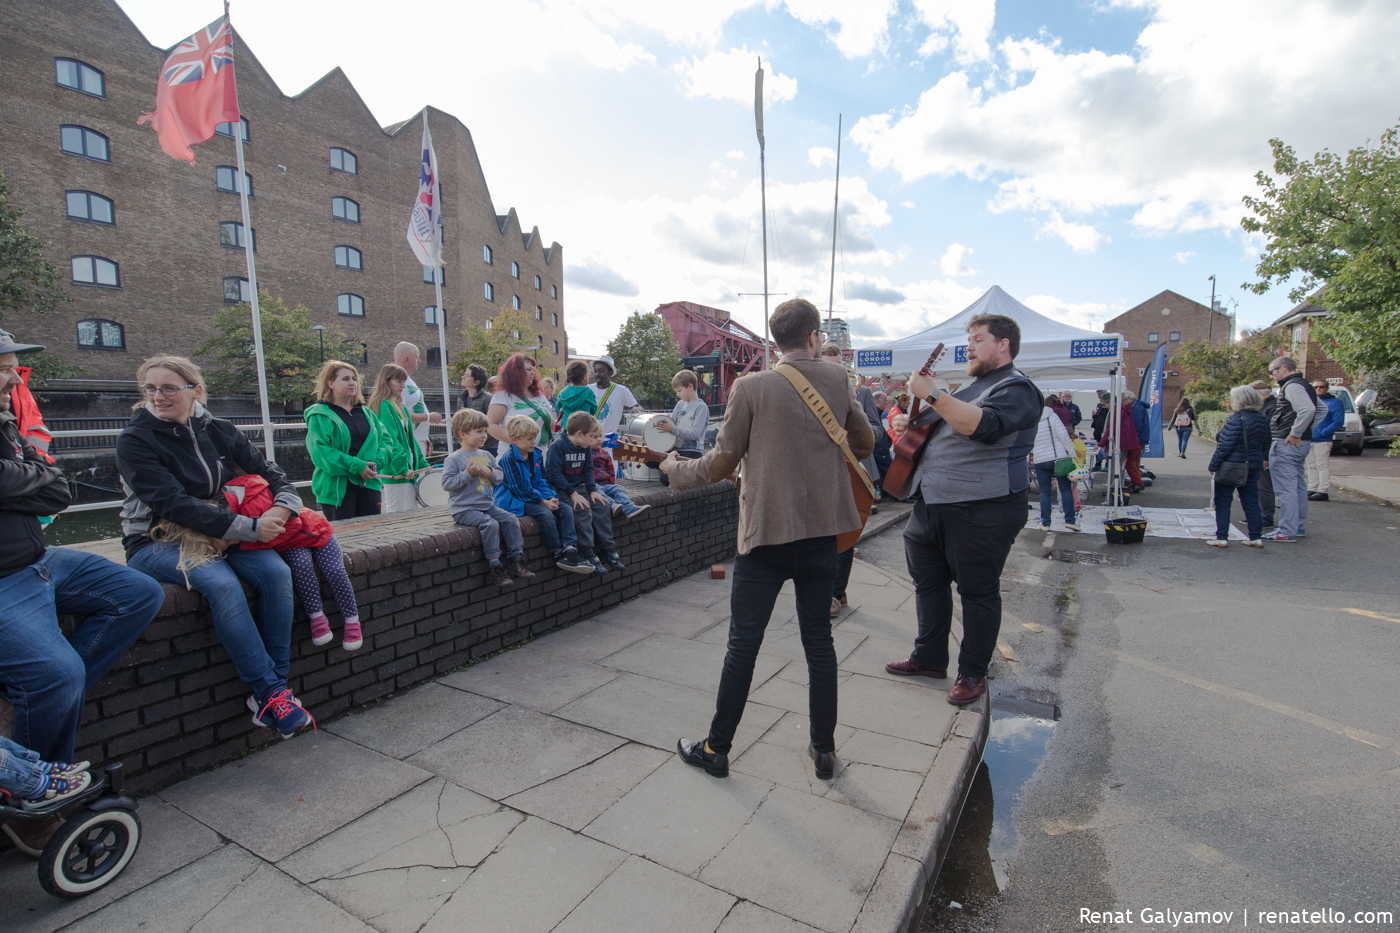 Music at Shadwell Basin Outdoor Activity Centre